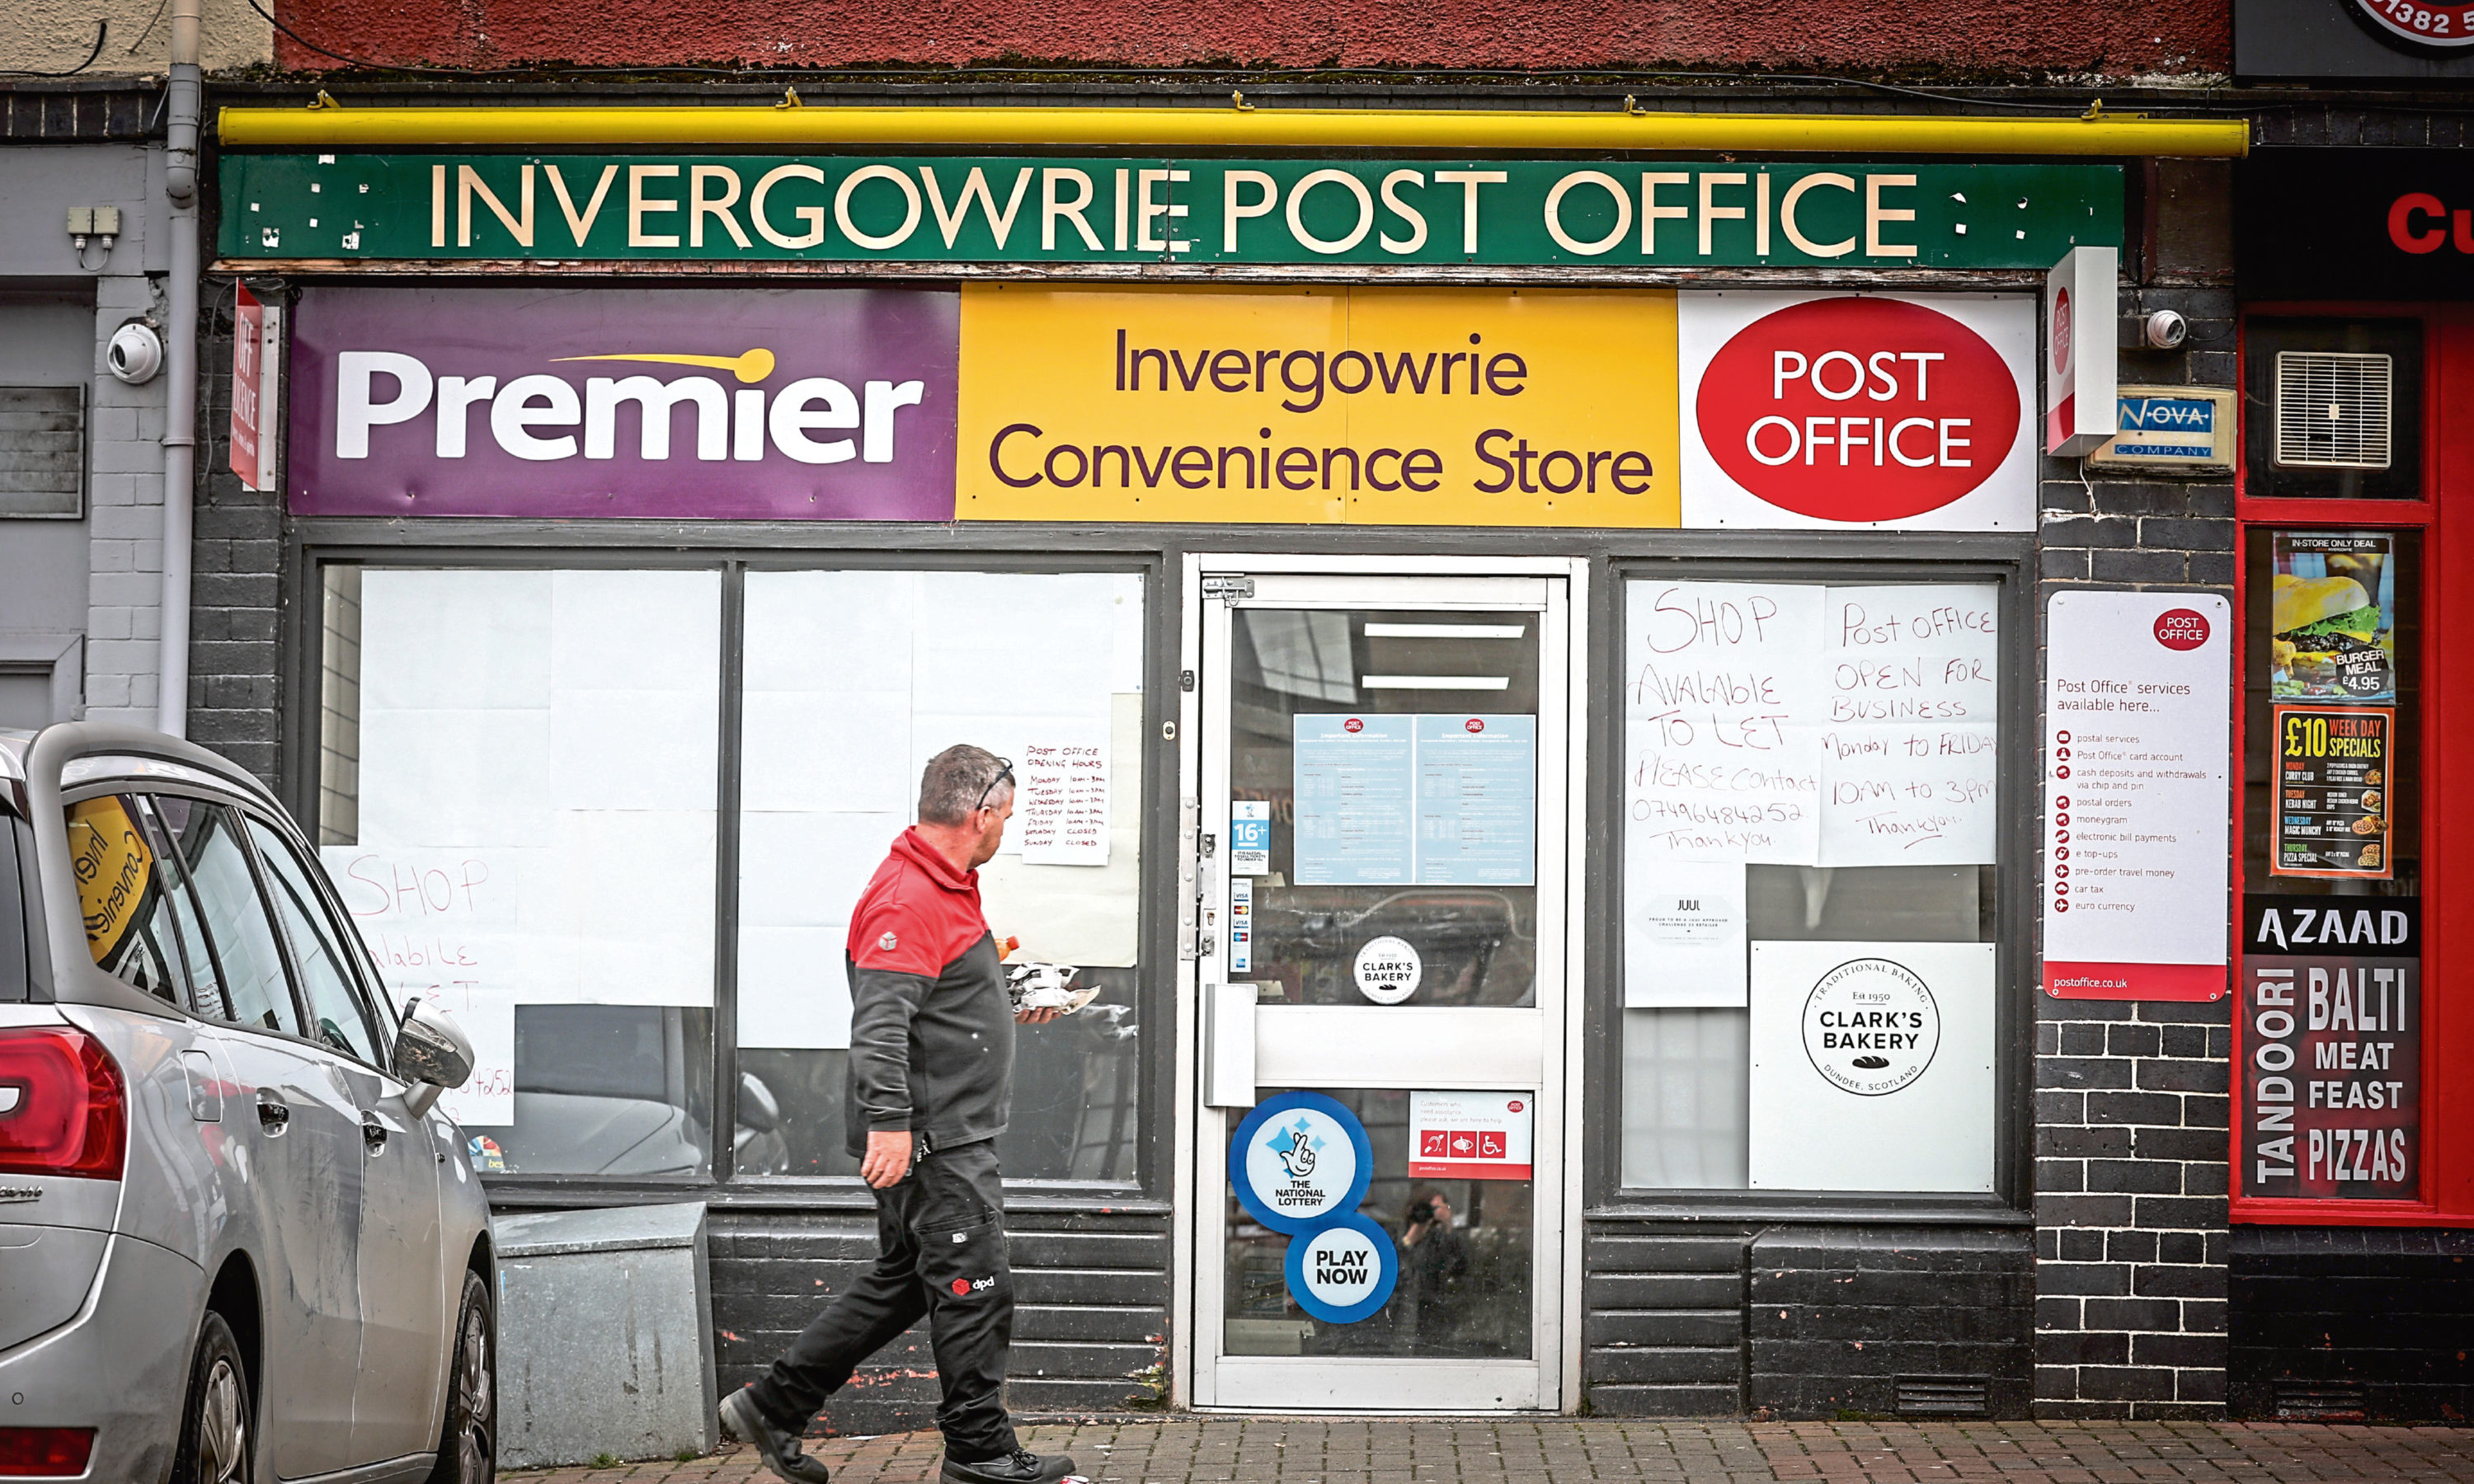 Invergowrie Post Office.